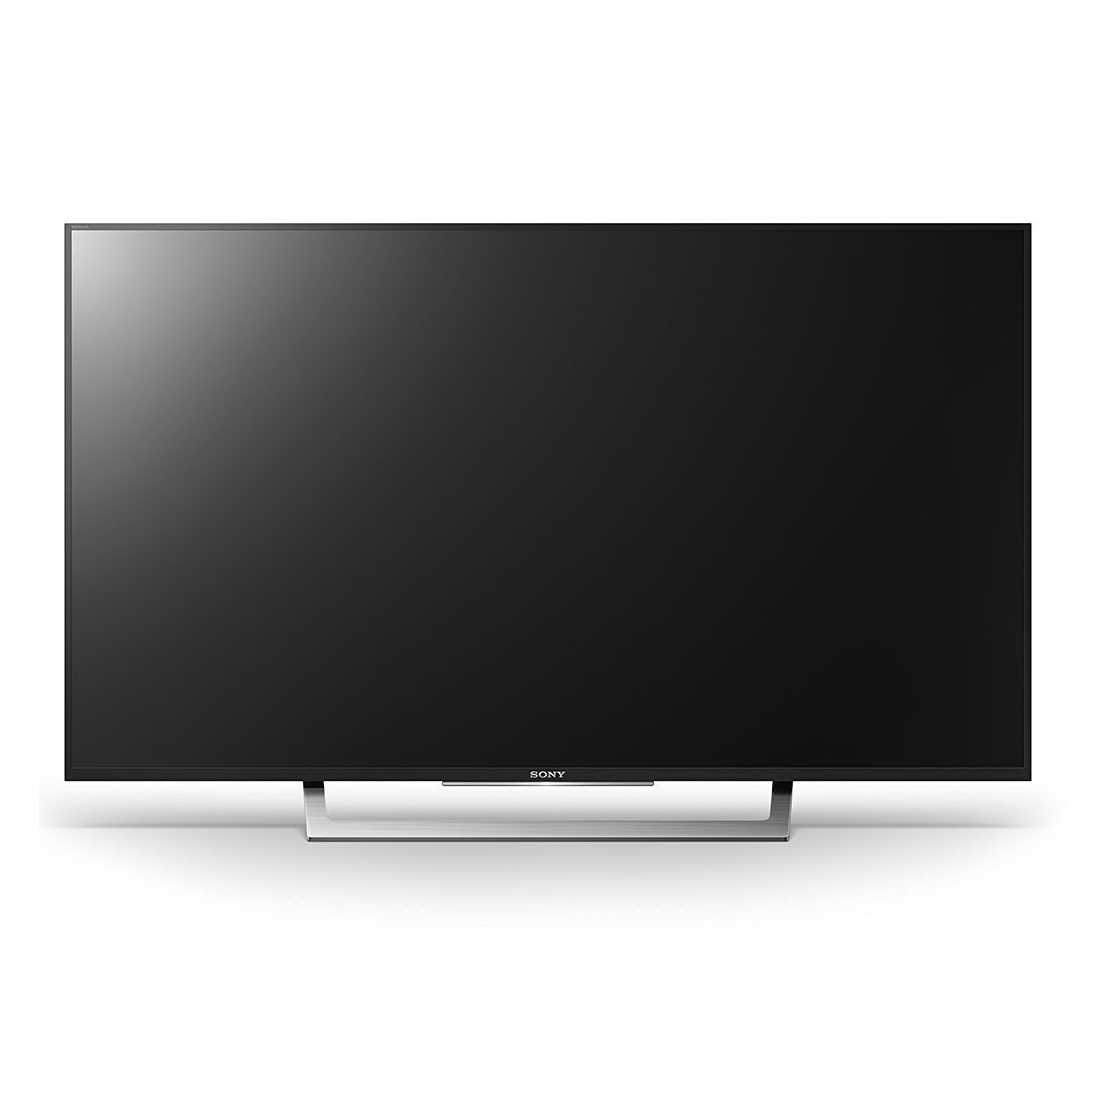 sony tv 43. sony bravia kd-43x8300d 43 inch 4k ultra hd android led television price {25 nov 2017} | reviews and specifications tv